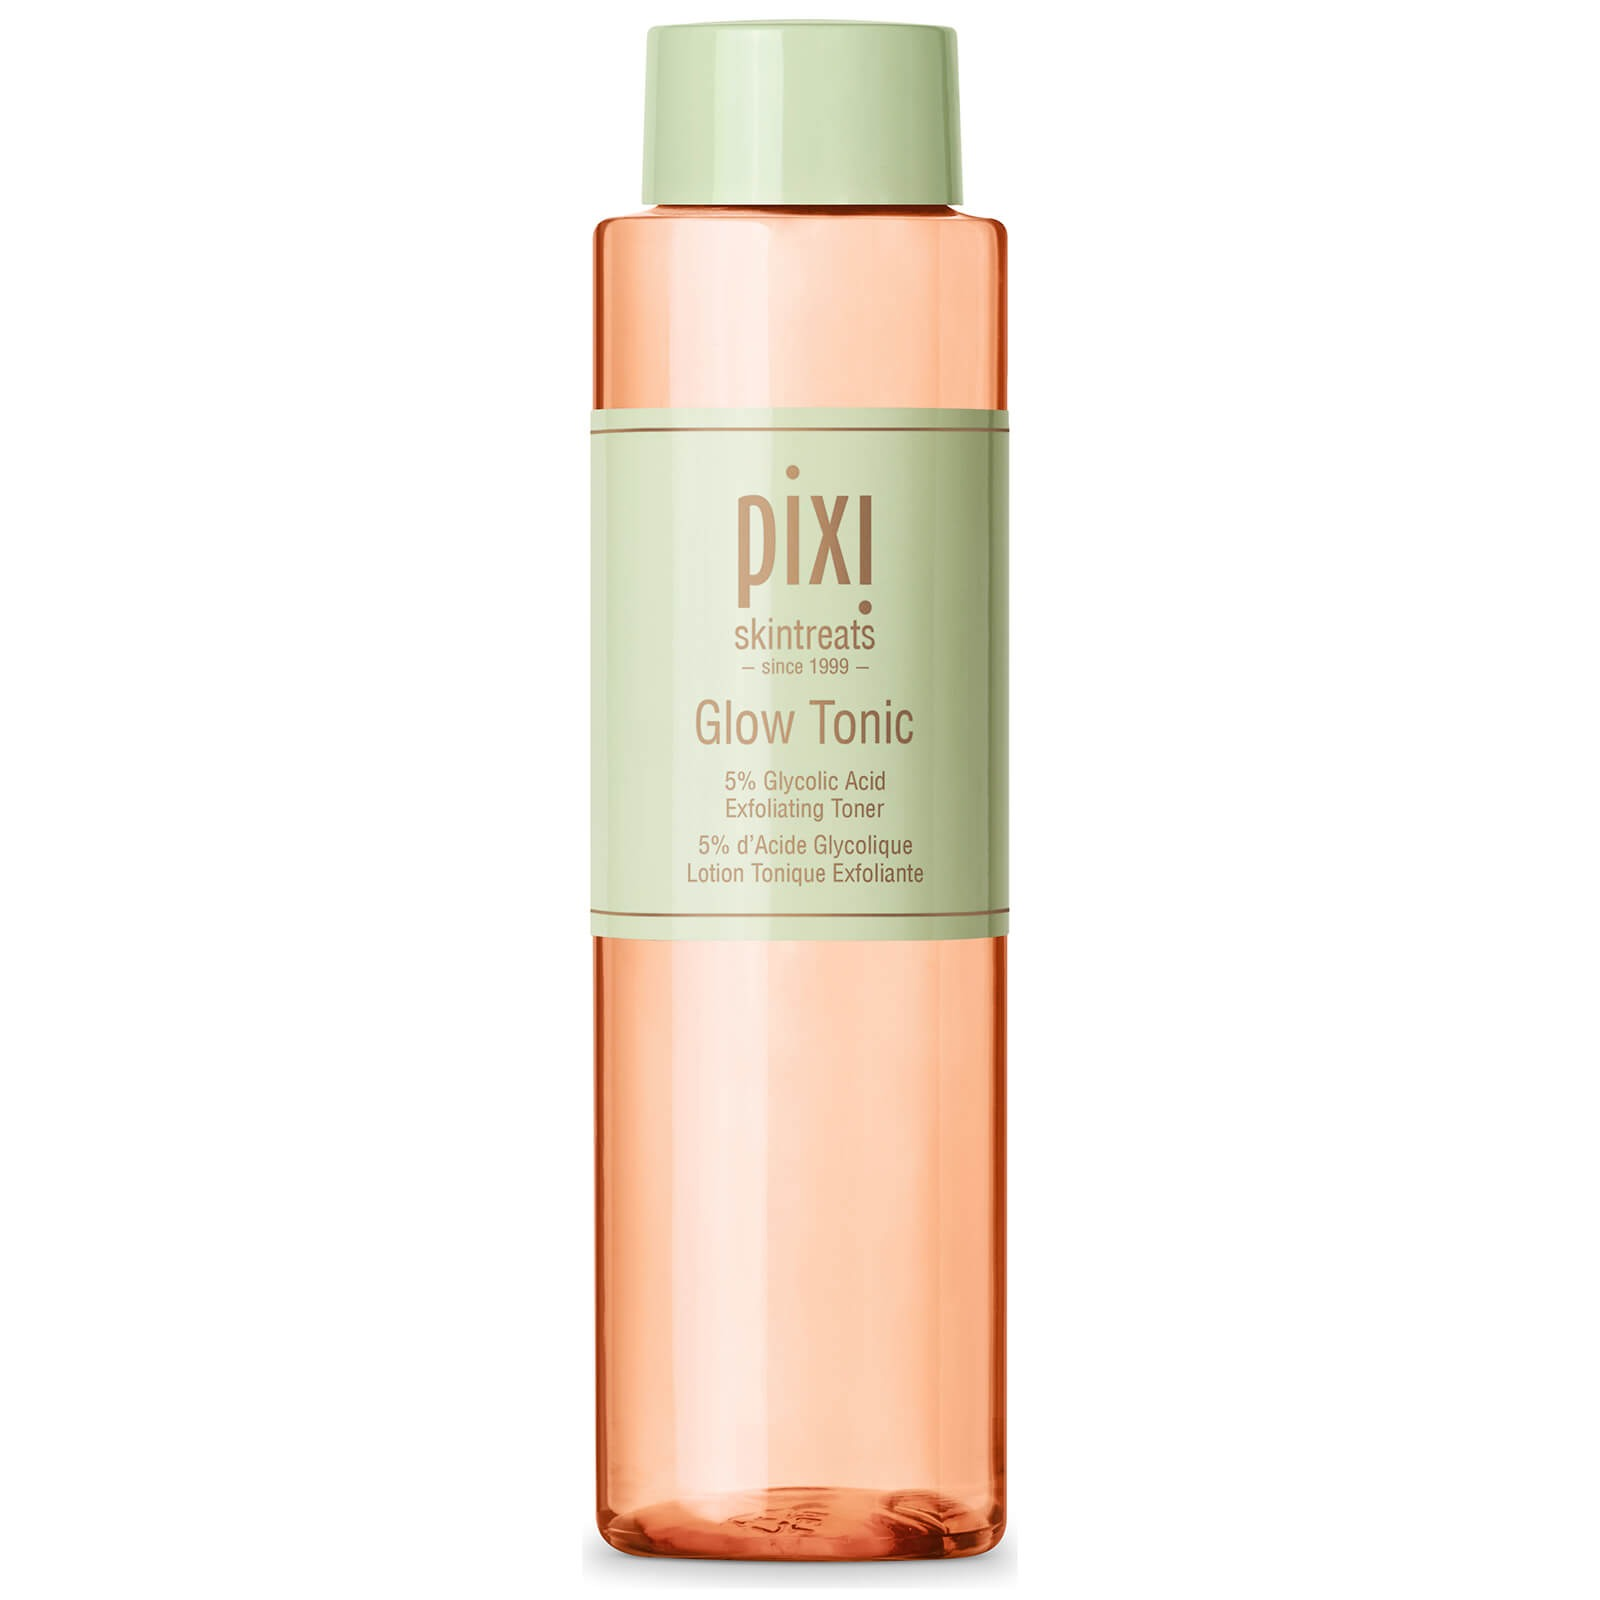 Pixi Glow Tonic Buy One Get One 50% OFF